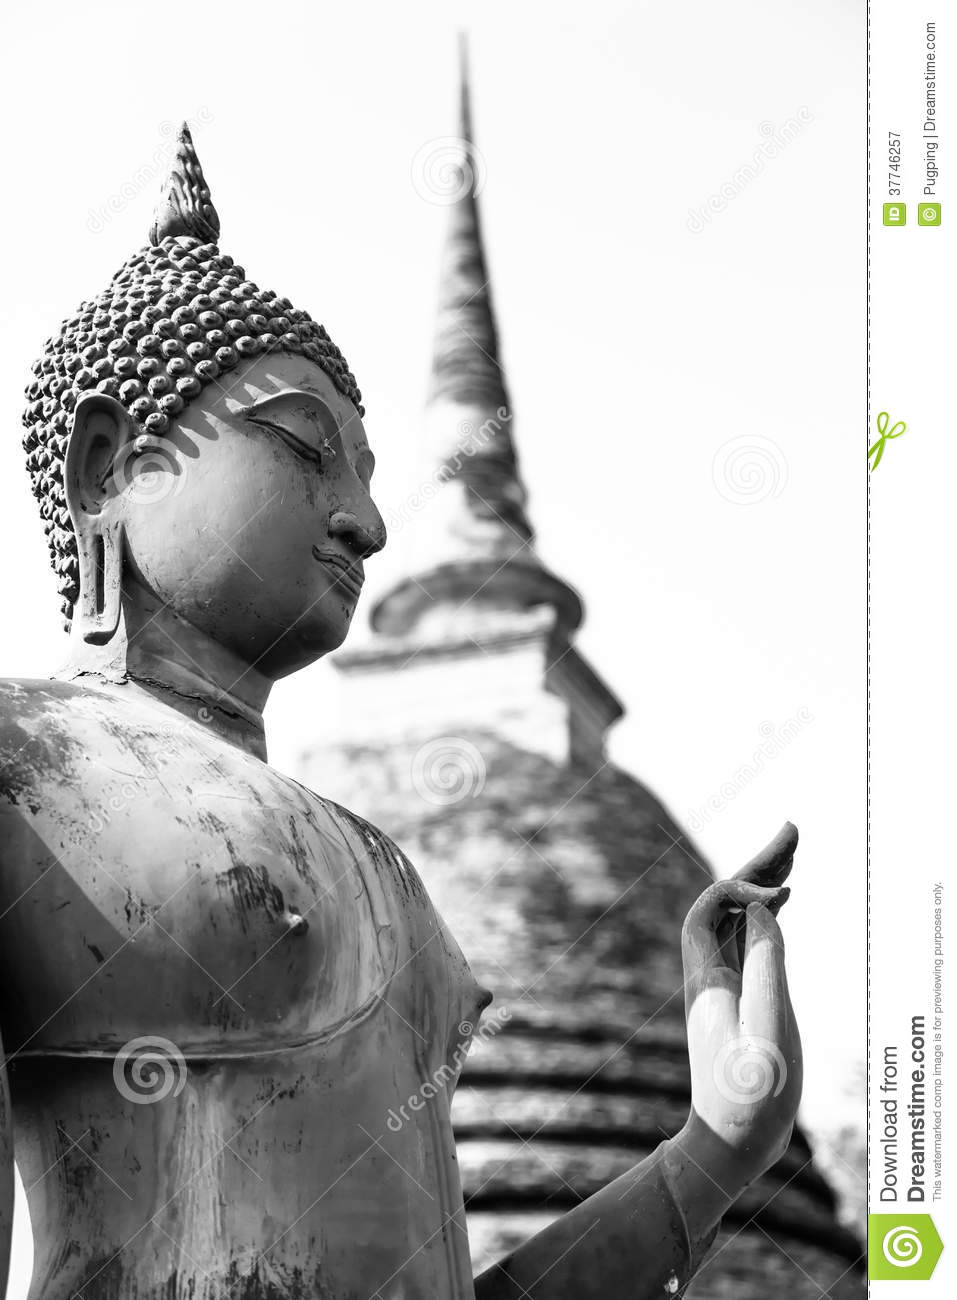 An ancient Buddha image, black and white